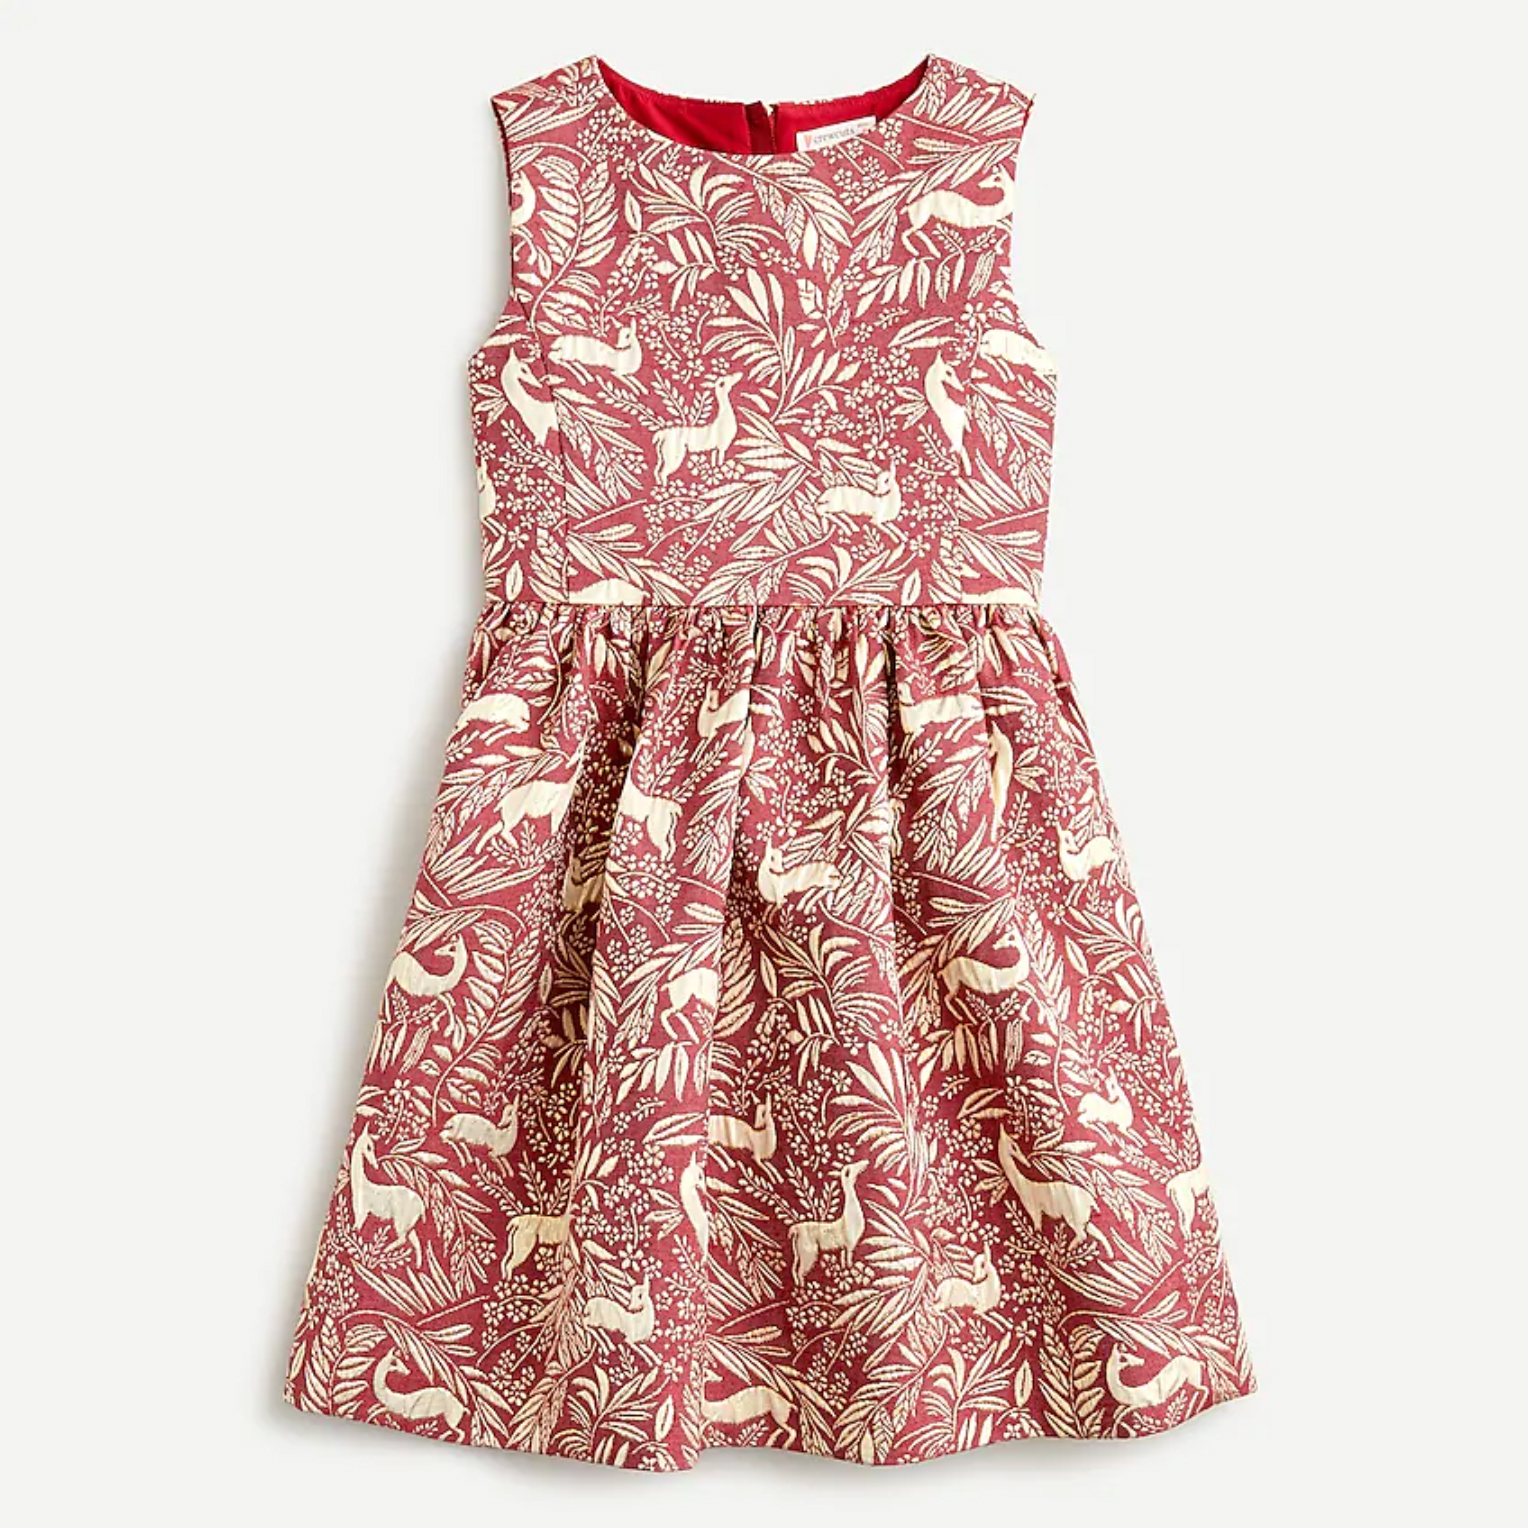 BUY: $98; jcrew.com                             By the looks of it, you'd never know this gilded print is machine washable. Let her eat all the chocolate, candy canes, and cookies her heart desires without fearing the dry clean bill.